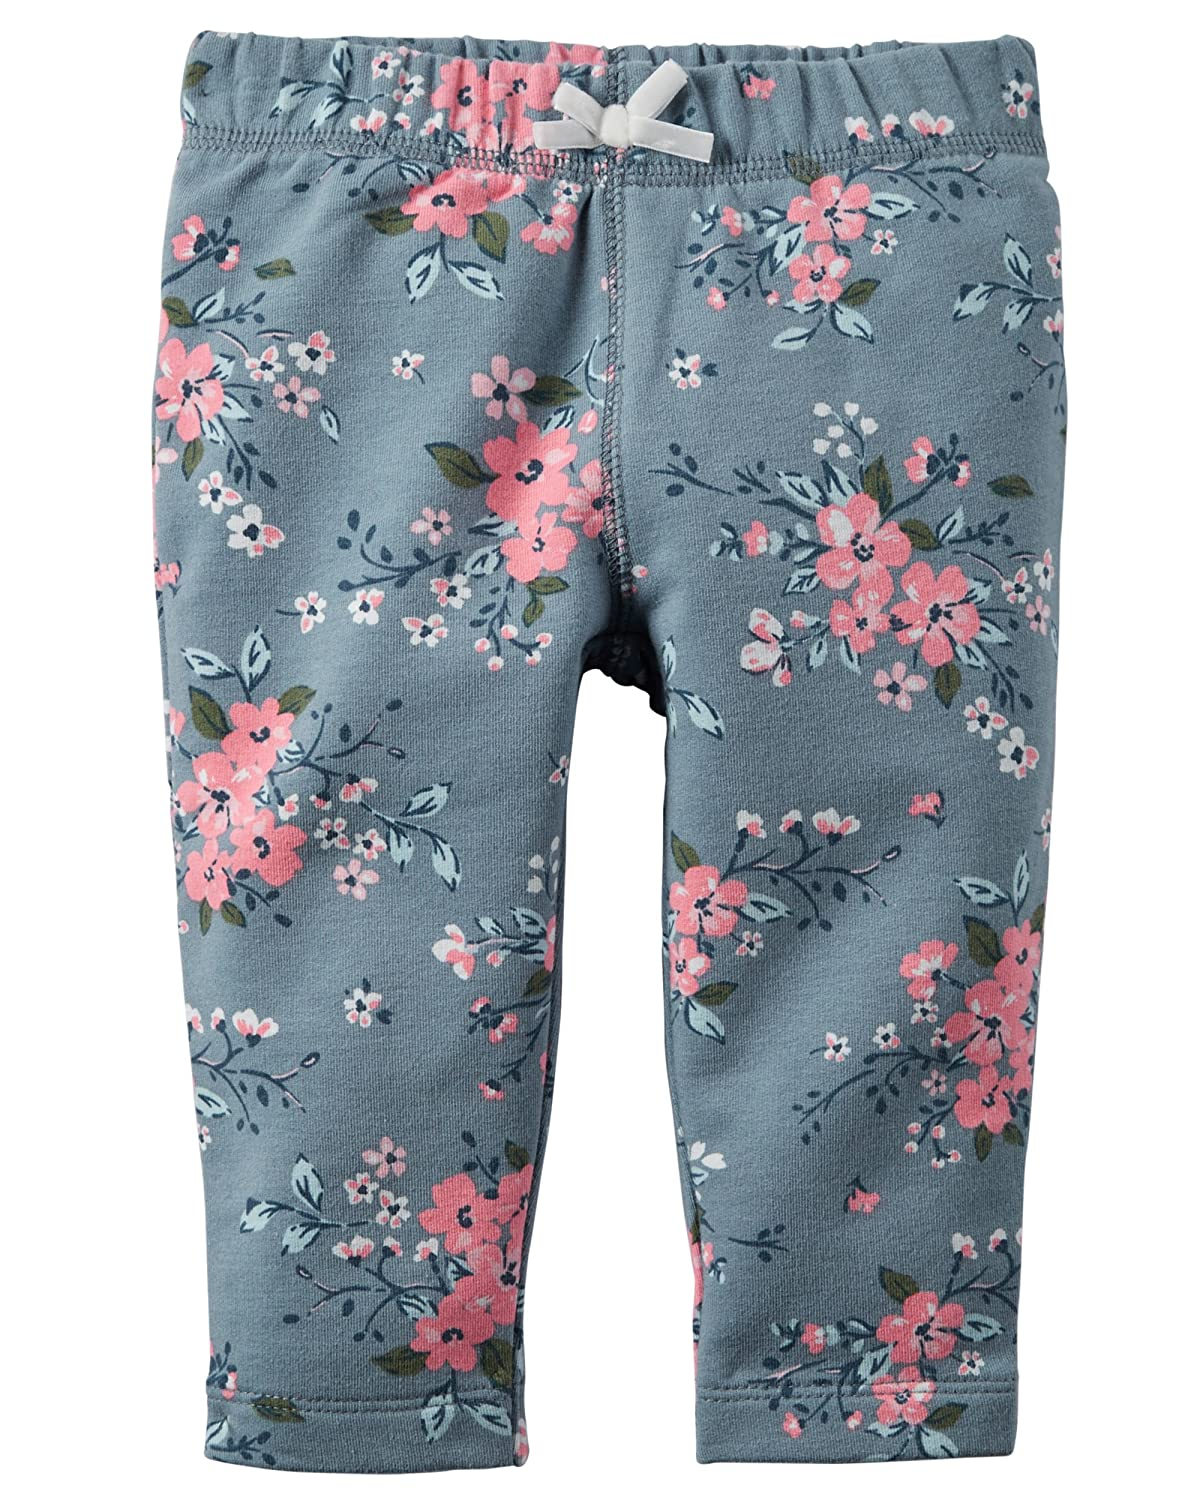 24m, Floral Carters Baby Girls French Terry Leggings Pants